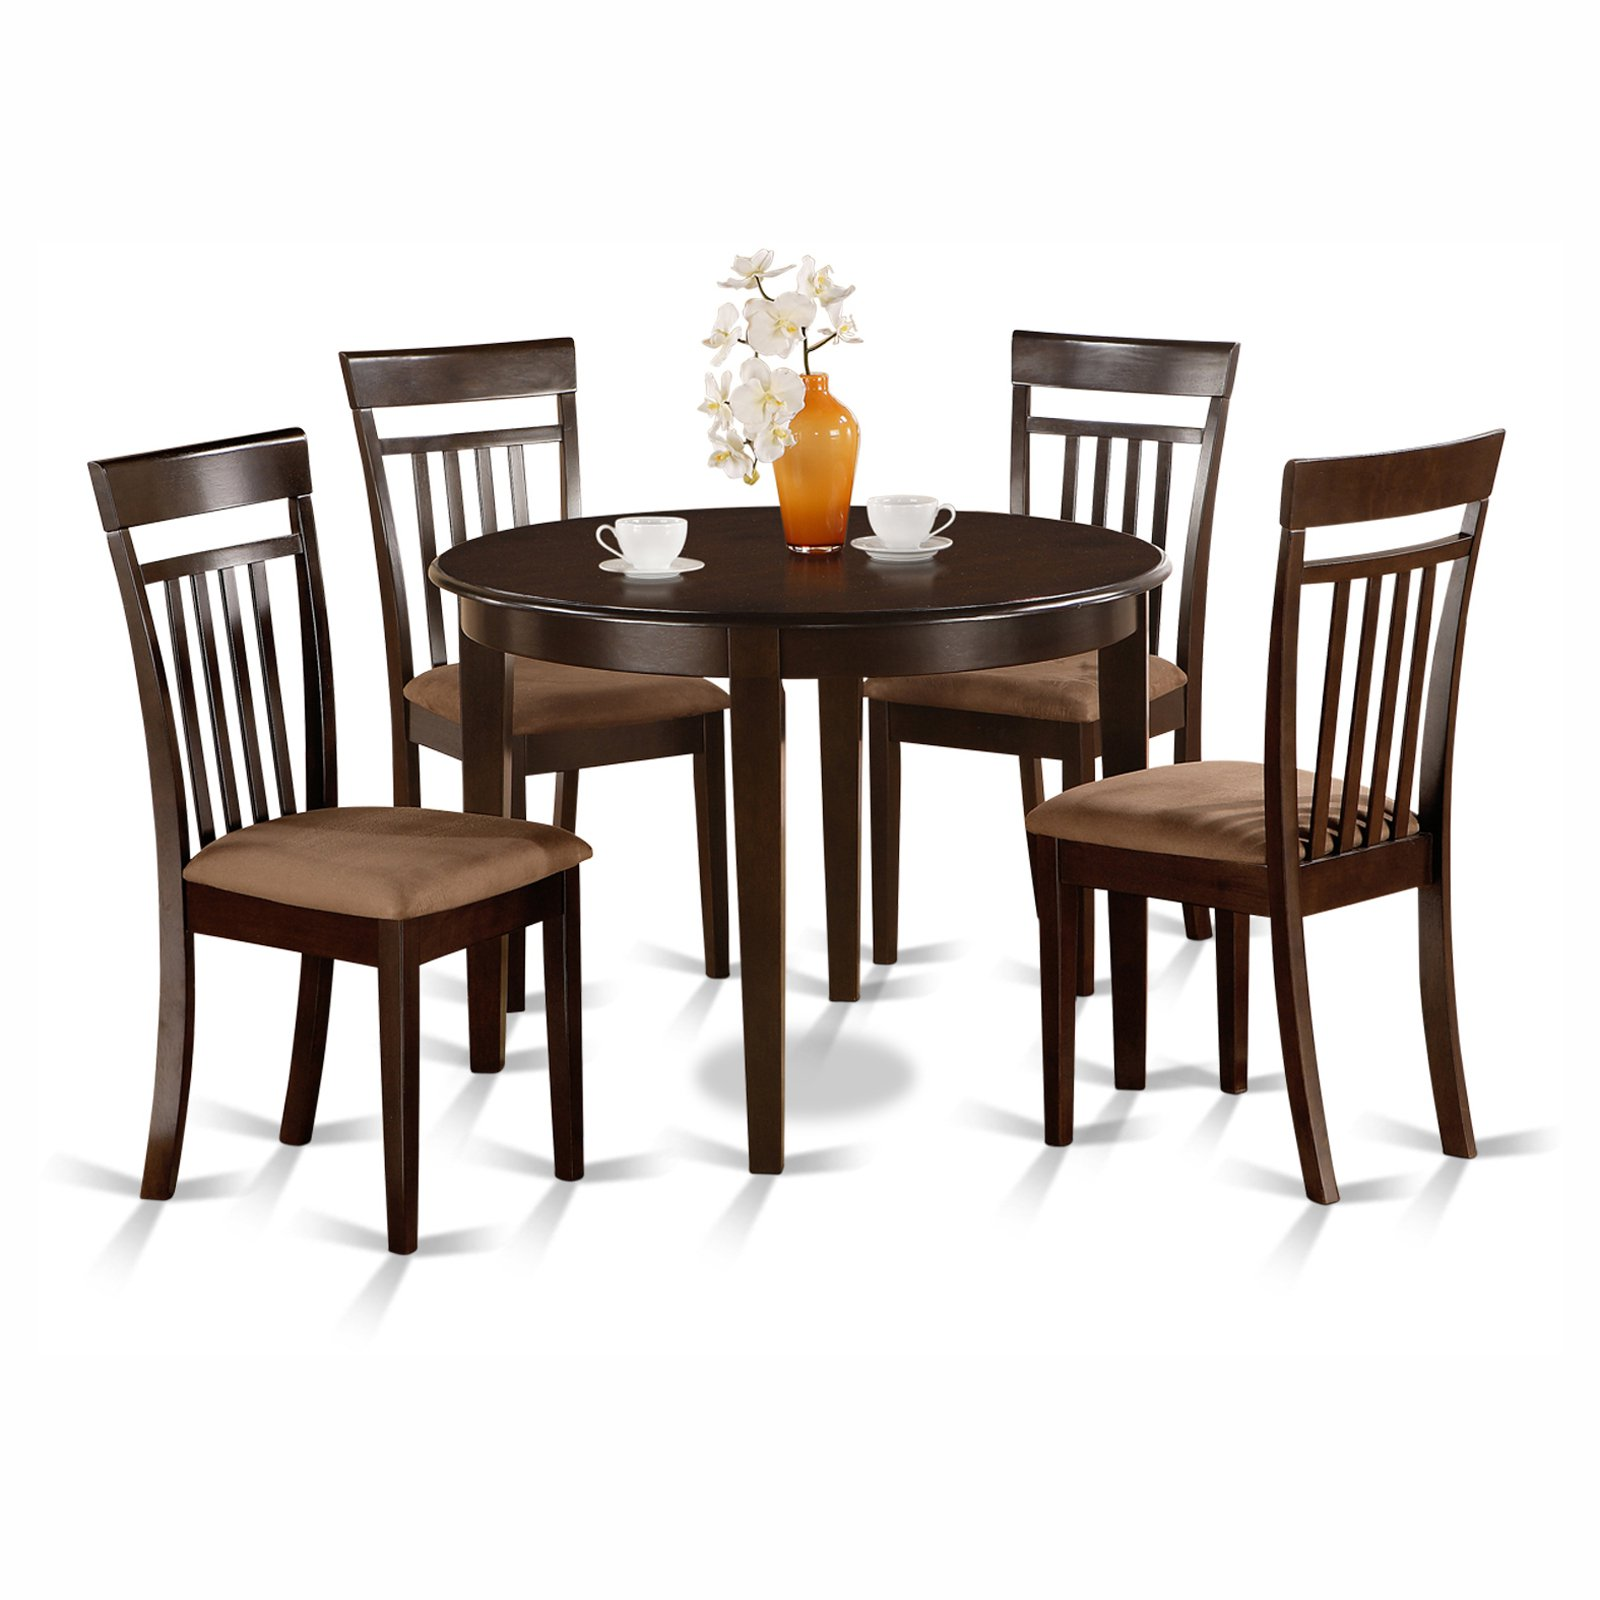 East West Furniture Boston 5 Piece Round Dining Table Set with Capris Microfiber Seat Chairs